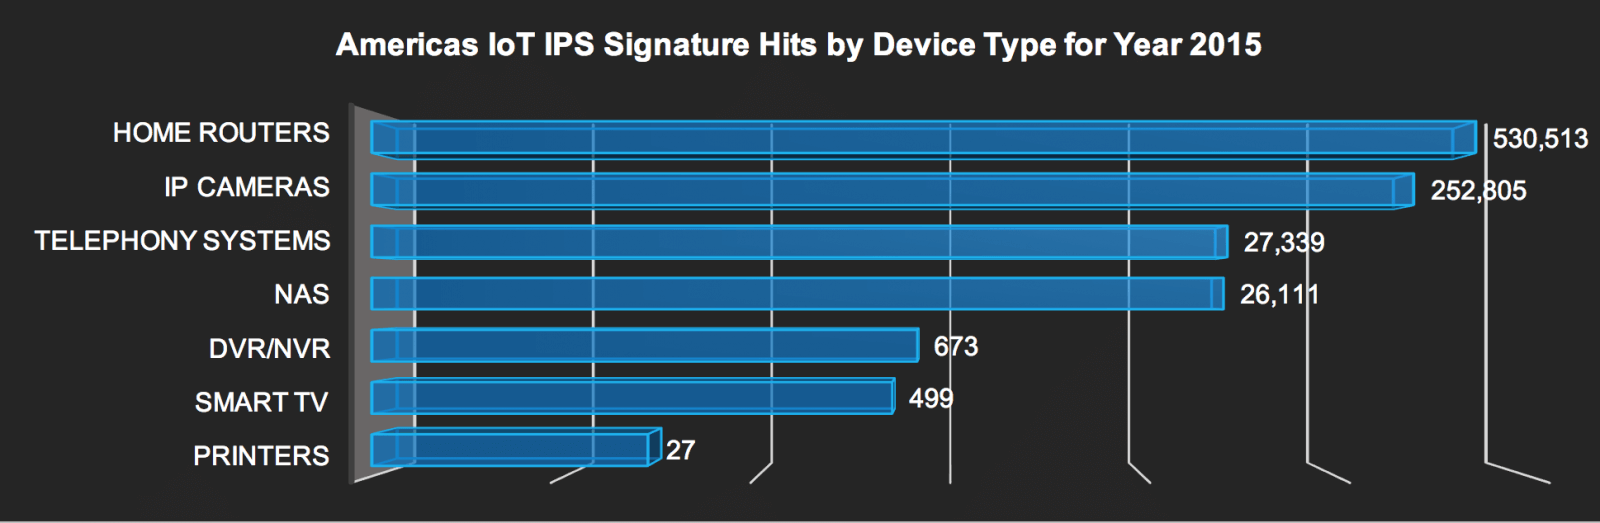 IoT IPS signature hits in Americas by device – 2015